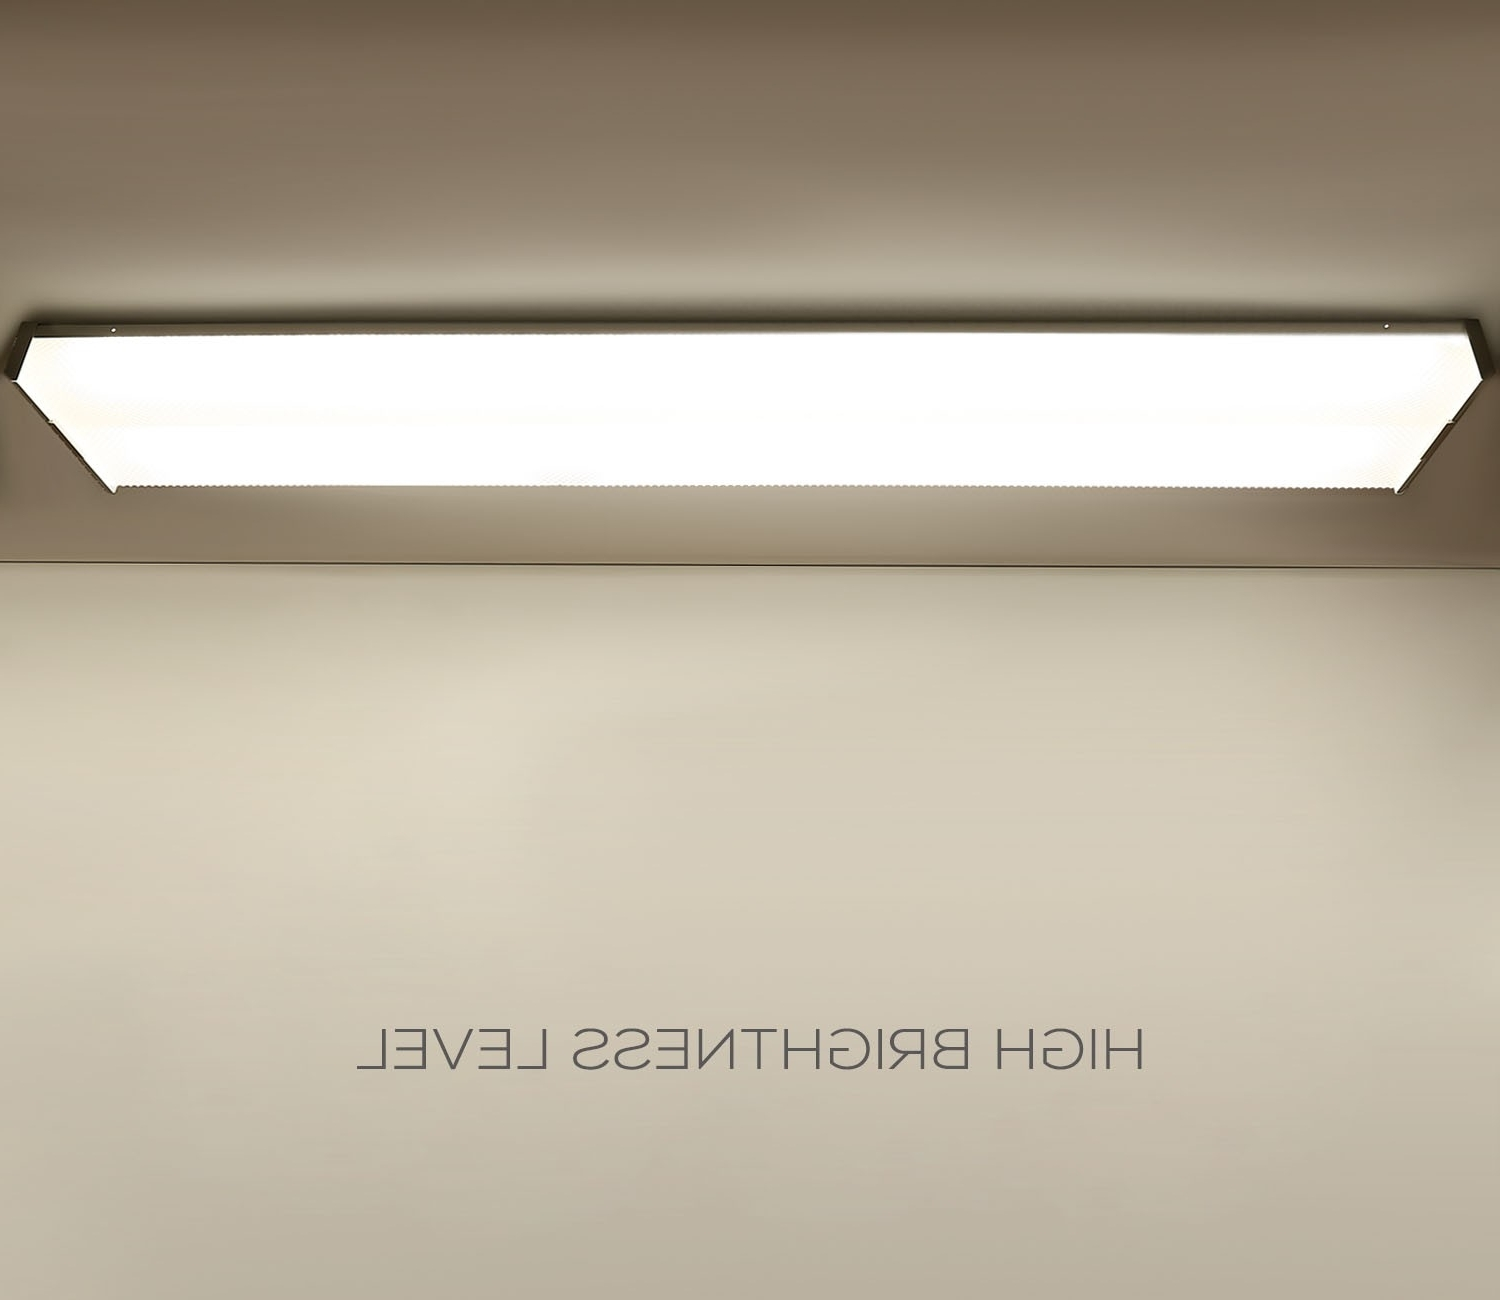 Low Profile Outdoor Ceiling Lights Intended For 2019 Home Lighting. 33 Low Profile Led Ceiling Light: Low Profile Led (Gallery 19 of 20)